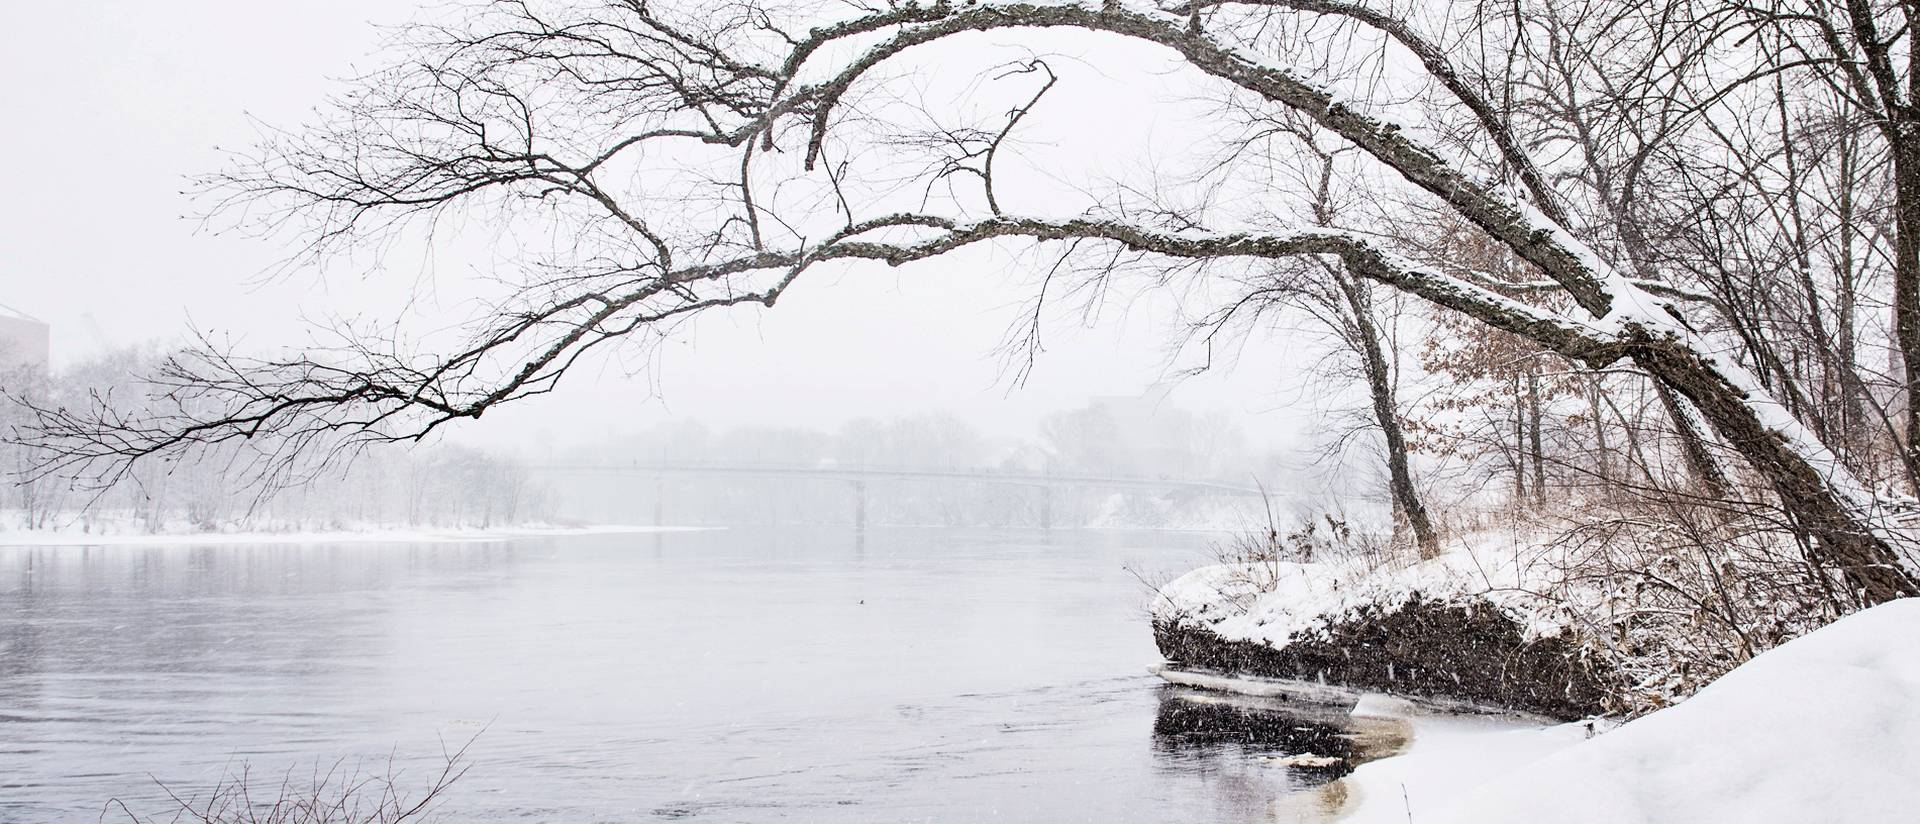 Snowy tree hanging over the Chippewa River